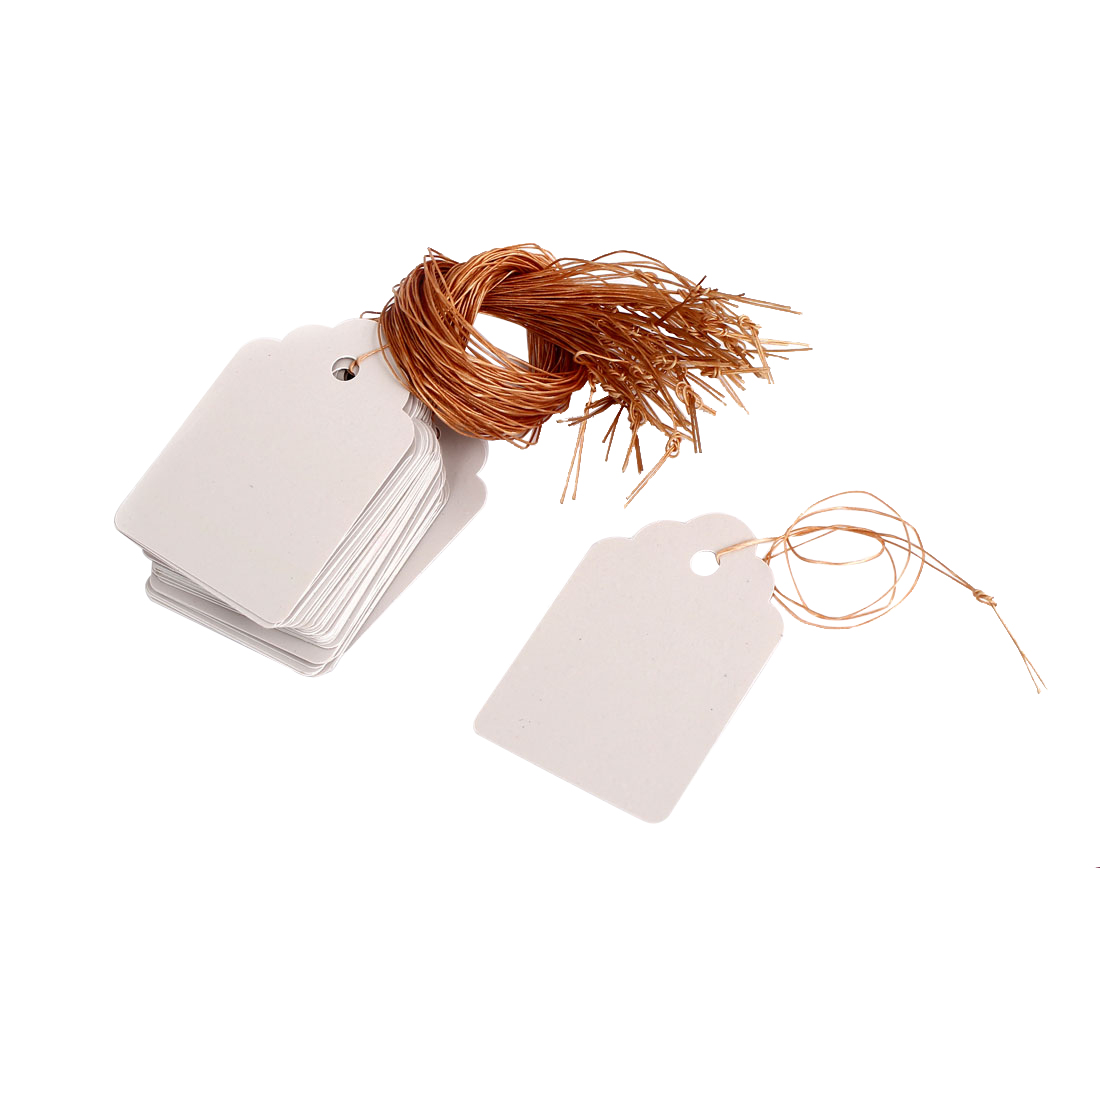 5cm x 3.4cm Plastic Nursery Garden Plant Seed Hanging Tag Label Marker White 50Pcs